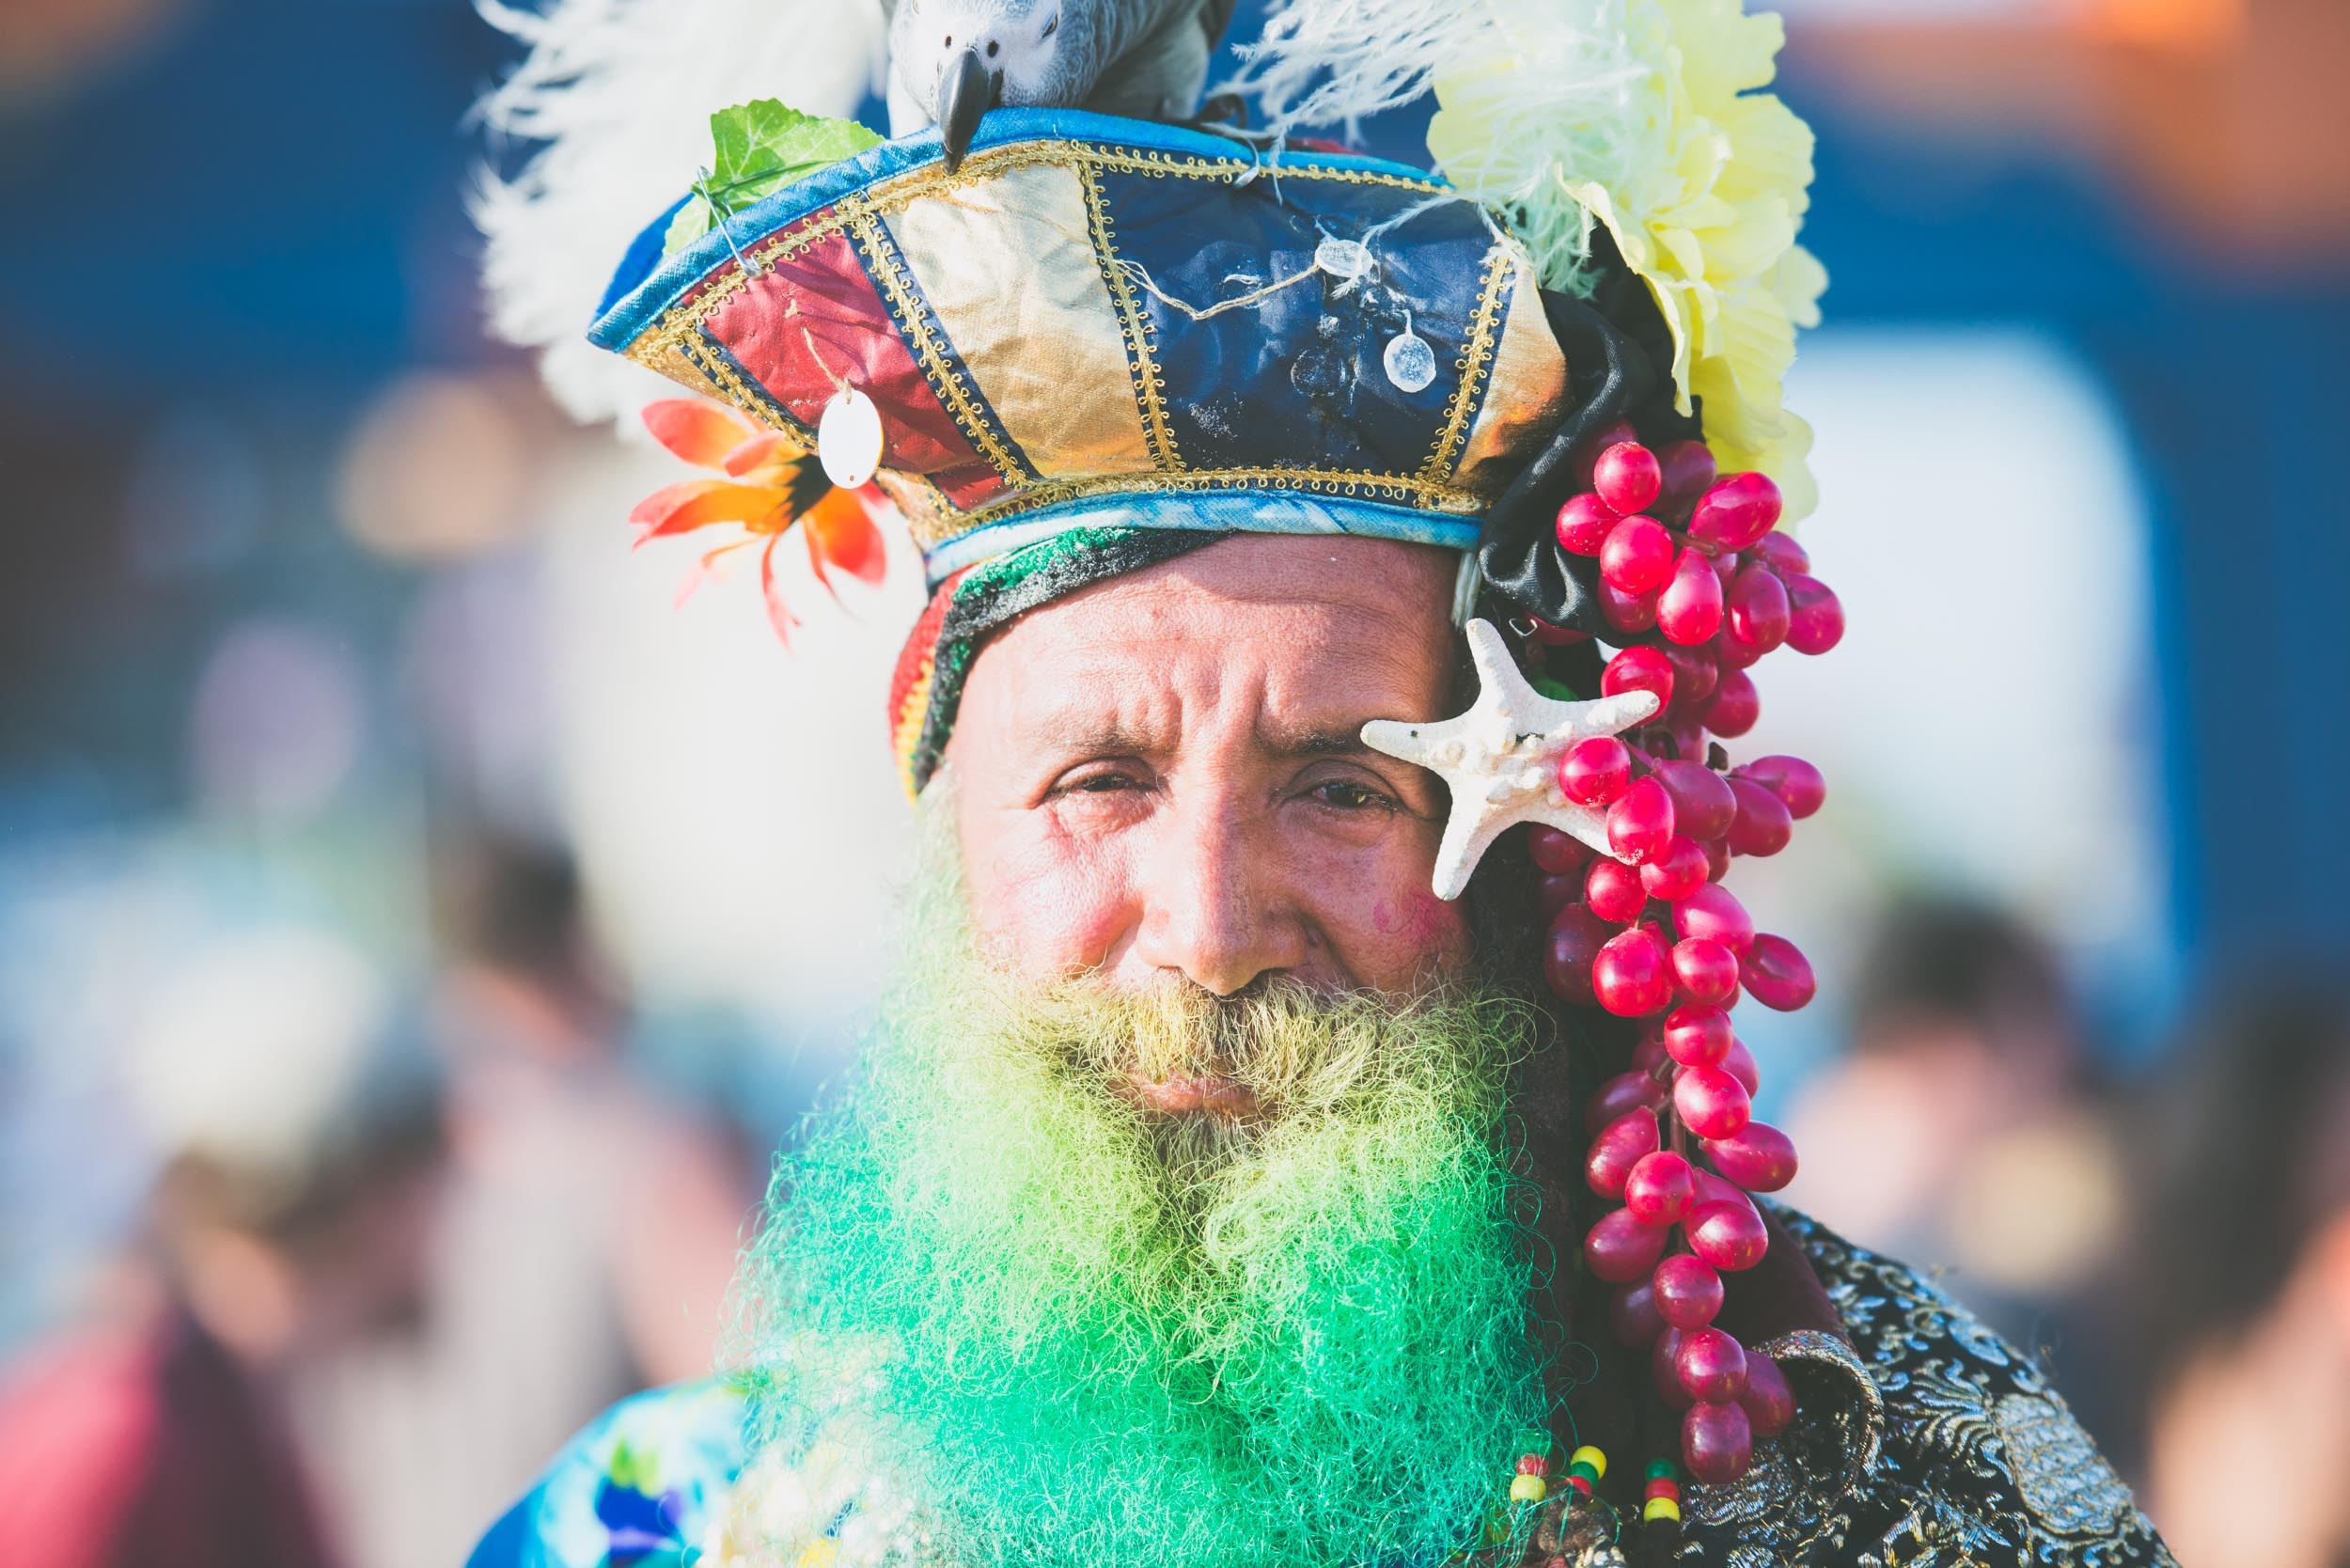 Colorful headress - Current events - Photo credit Nicola Bailey.jpg